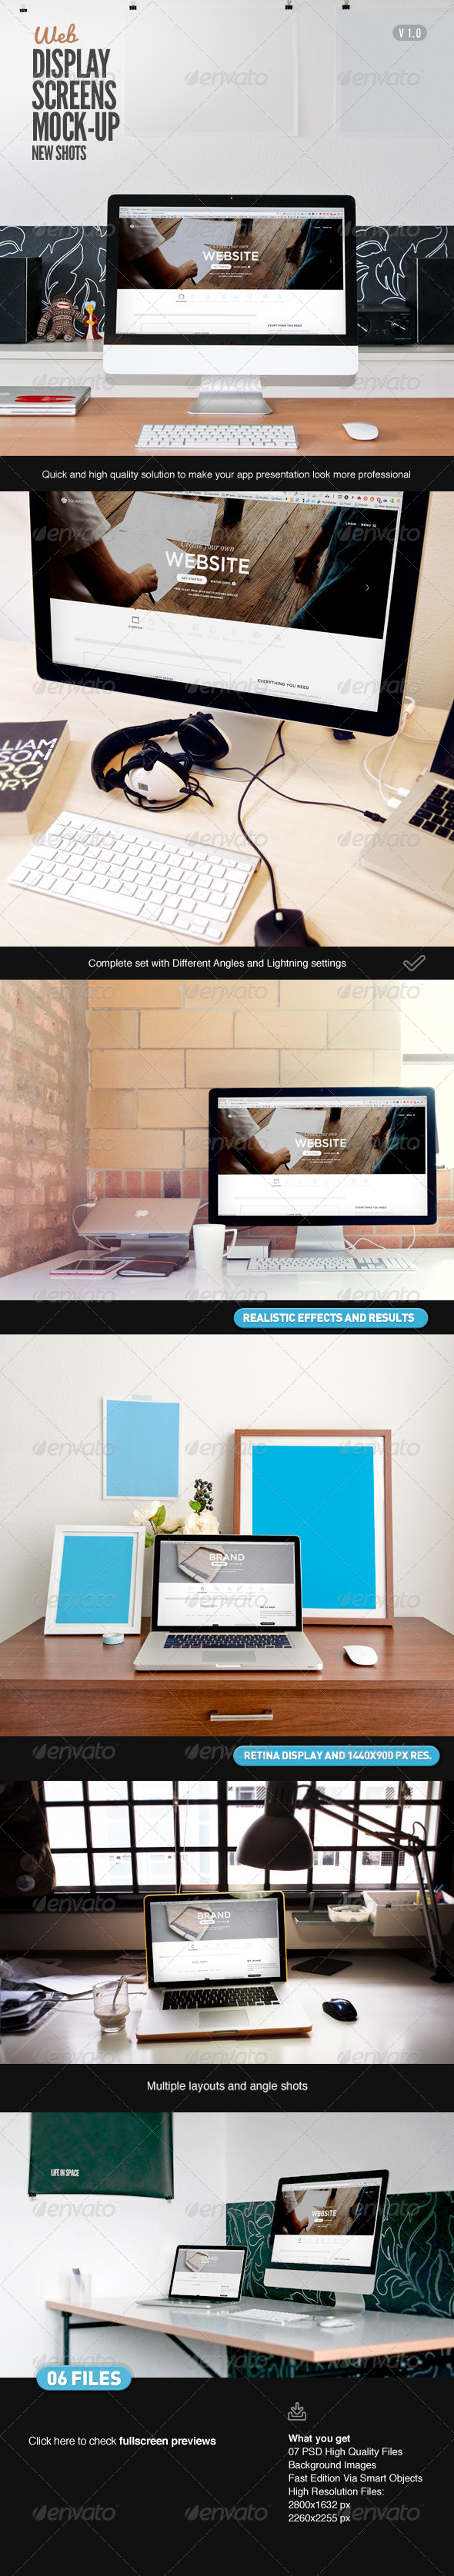 GraphicRiver Display Screen Web Mock-Up 7755642